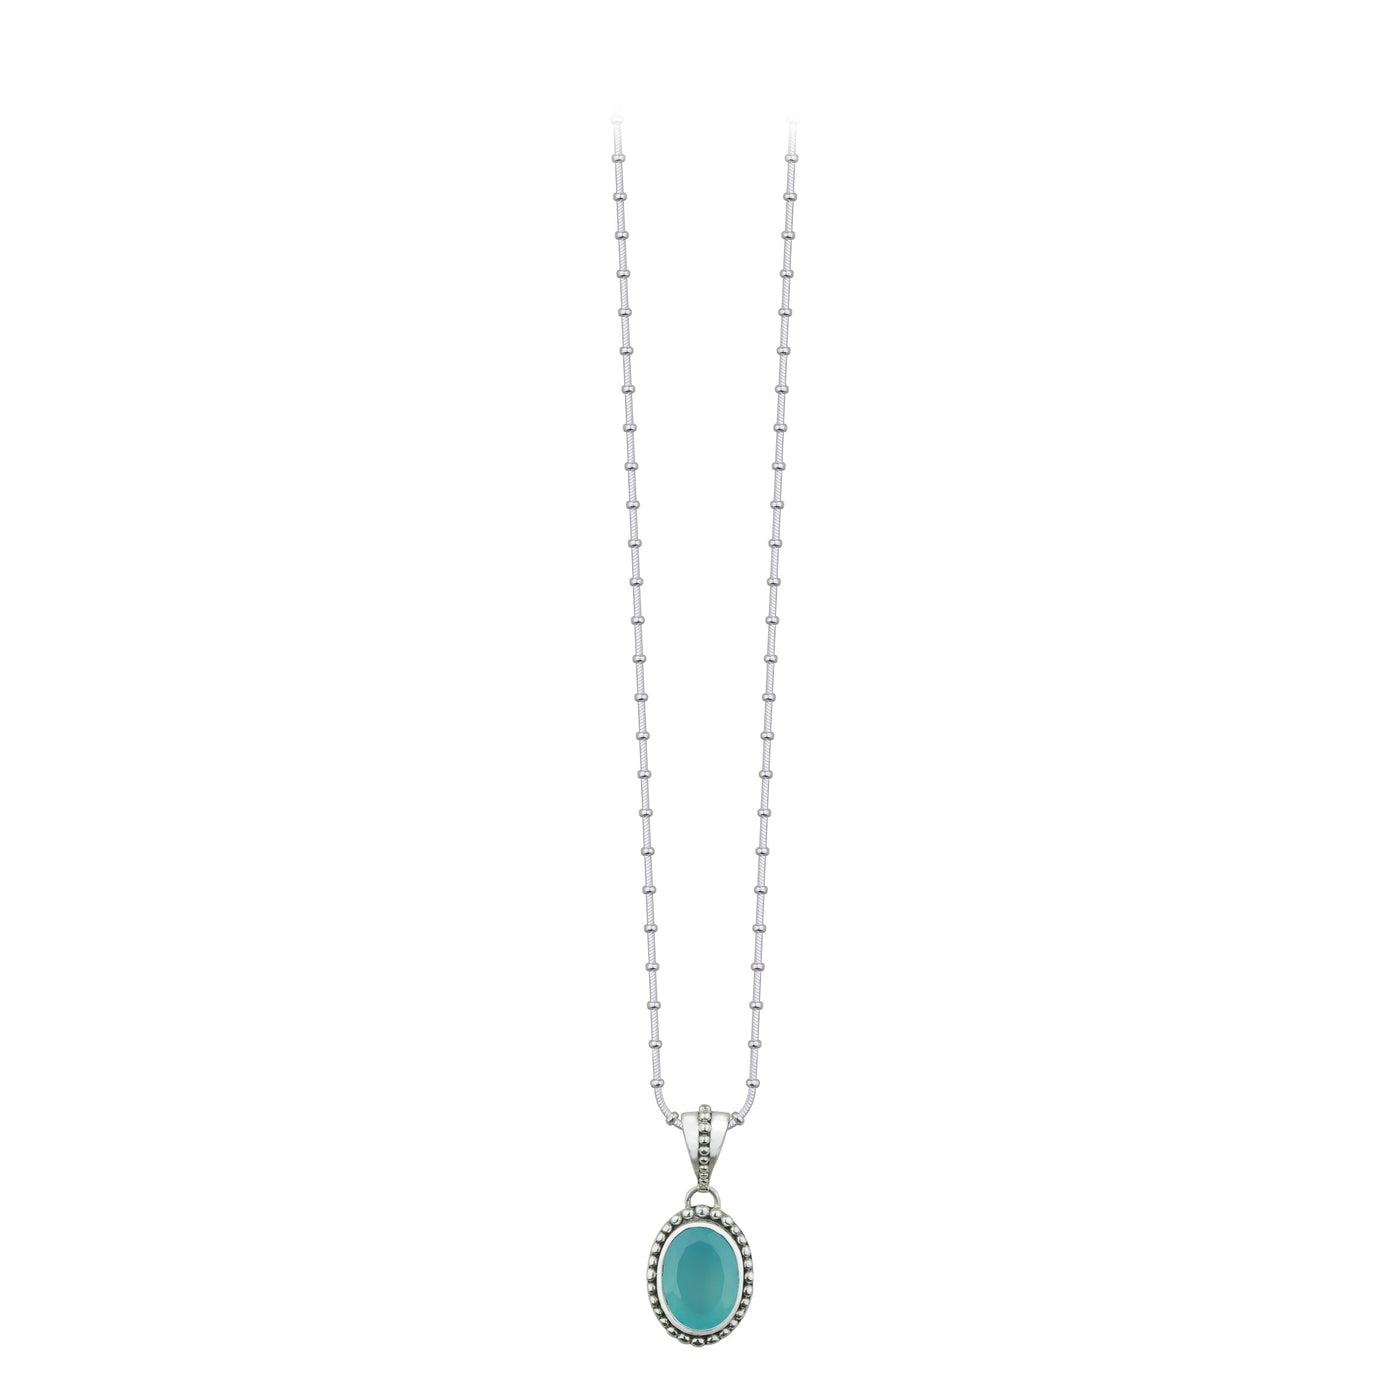 JD N64046 CHALCEDONY BEADED OVAL PENDANT